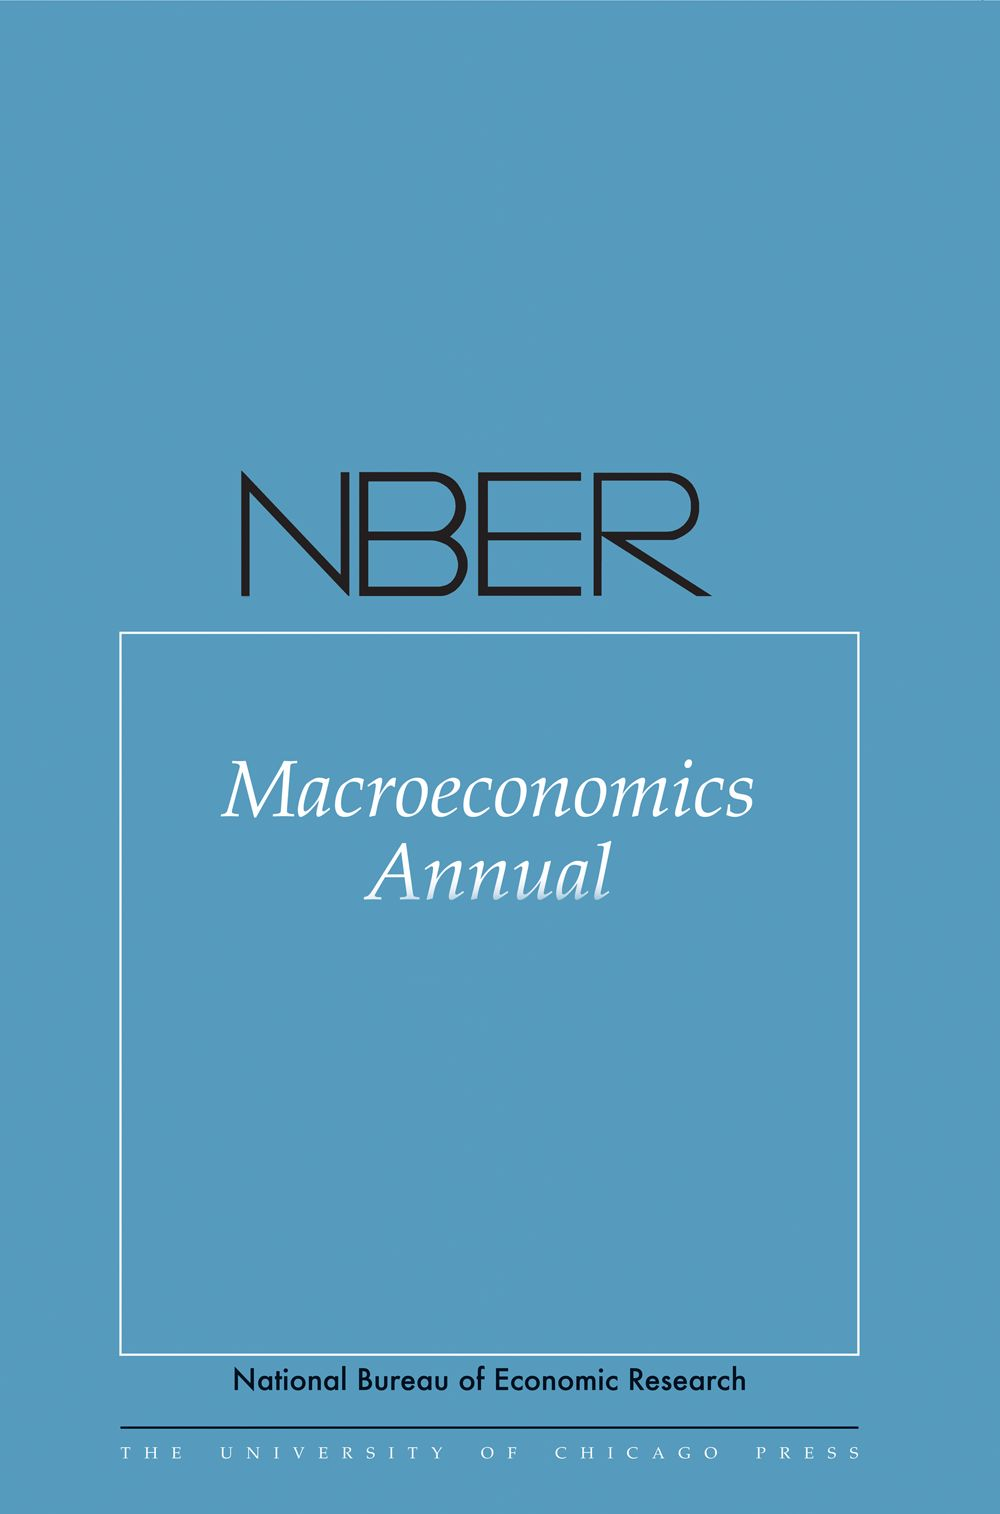 NBER Macroeconomics Annual 2017